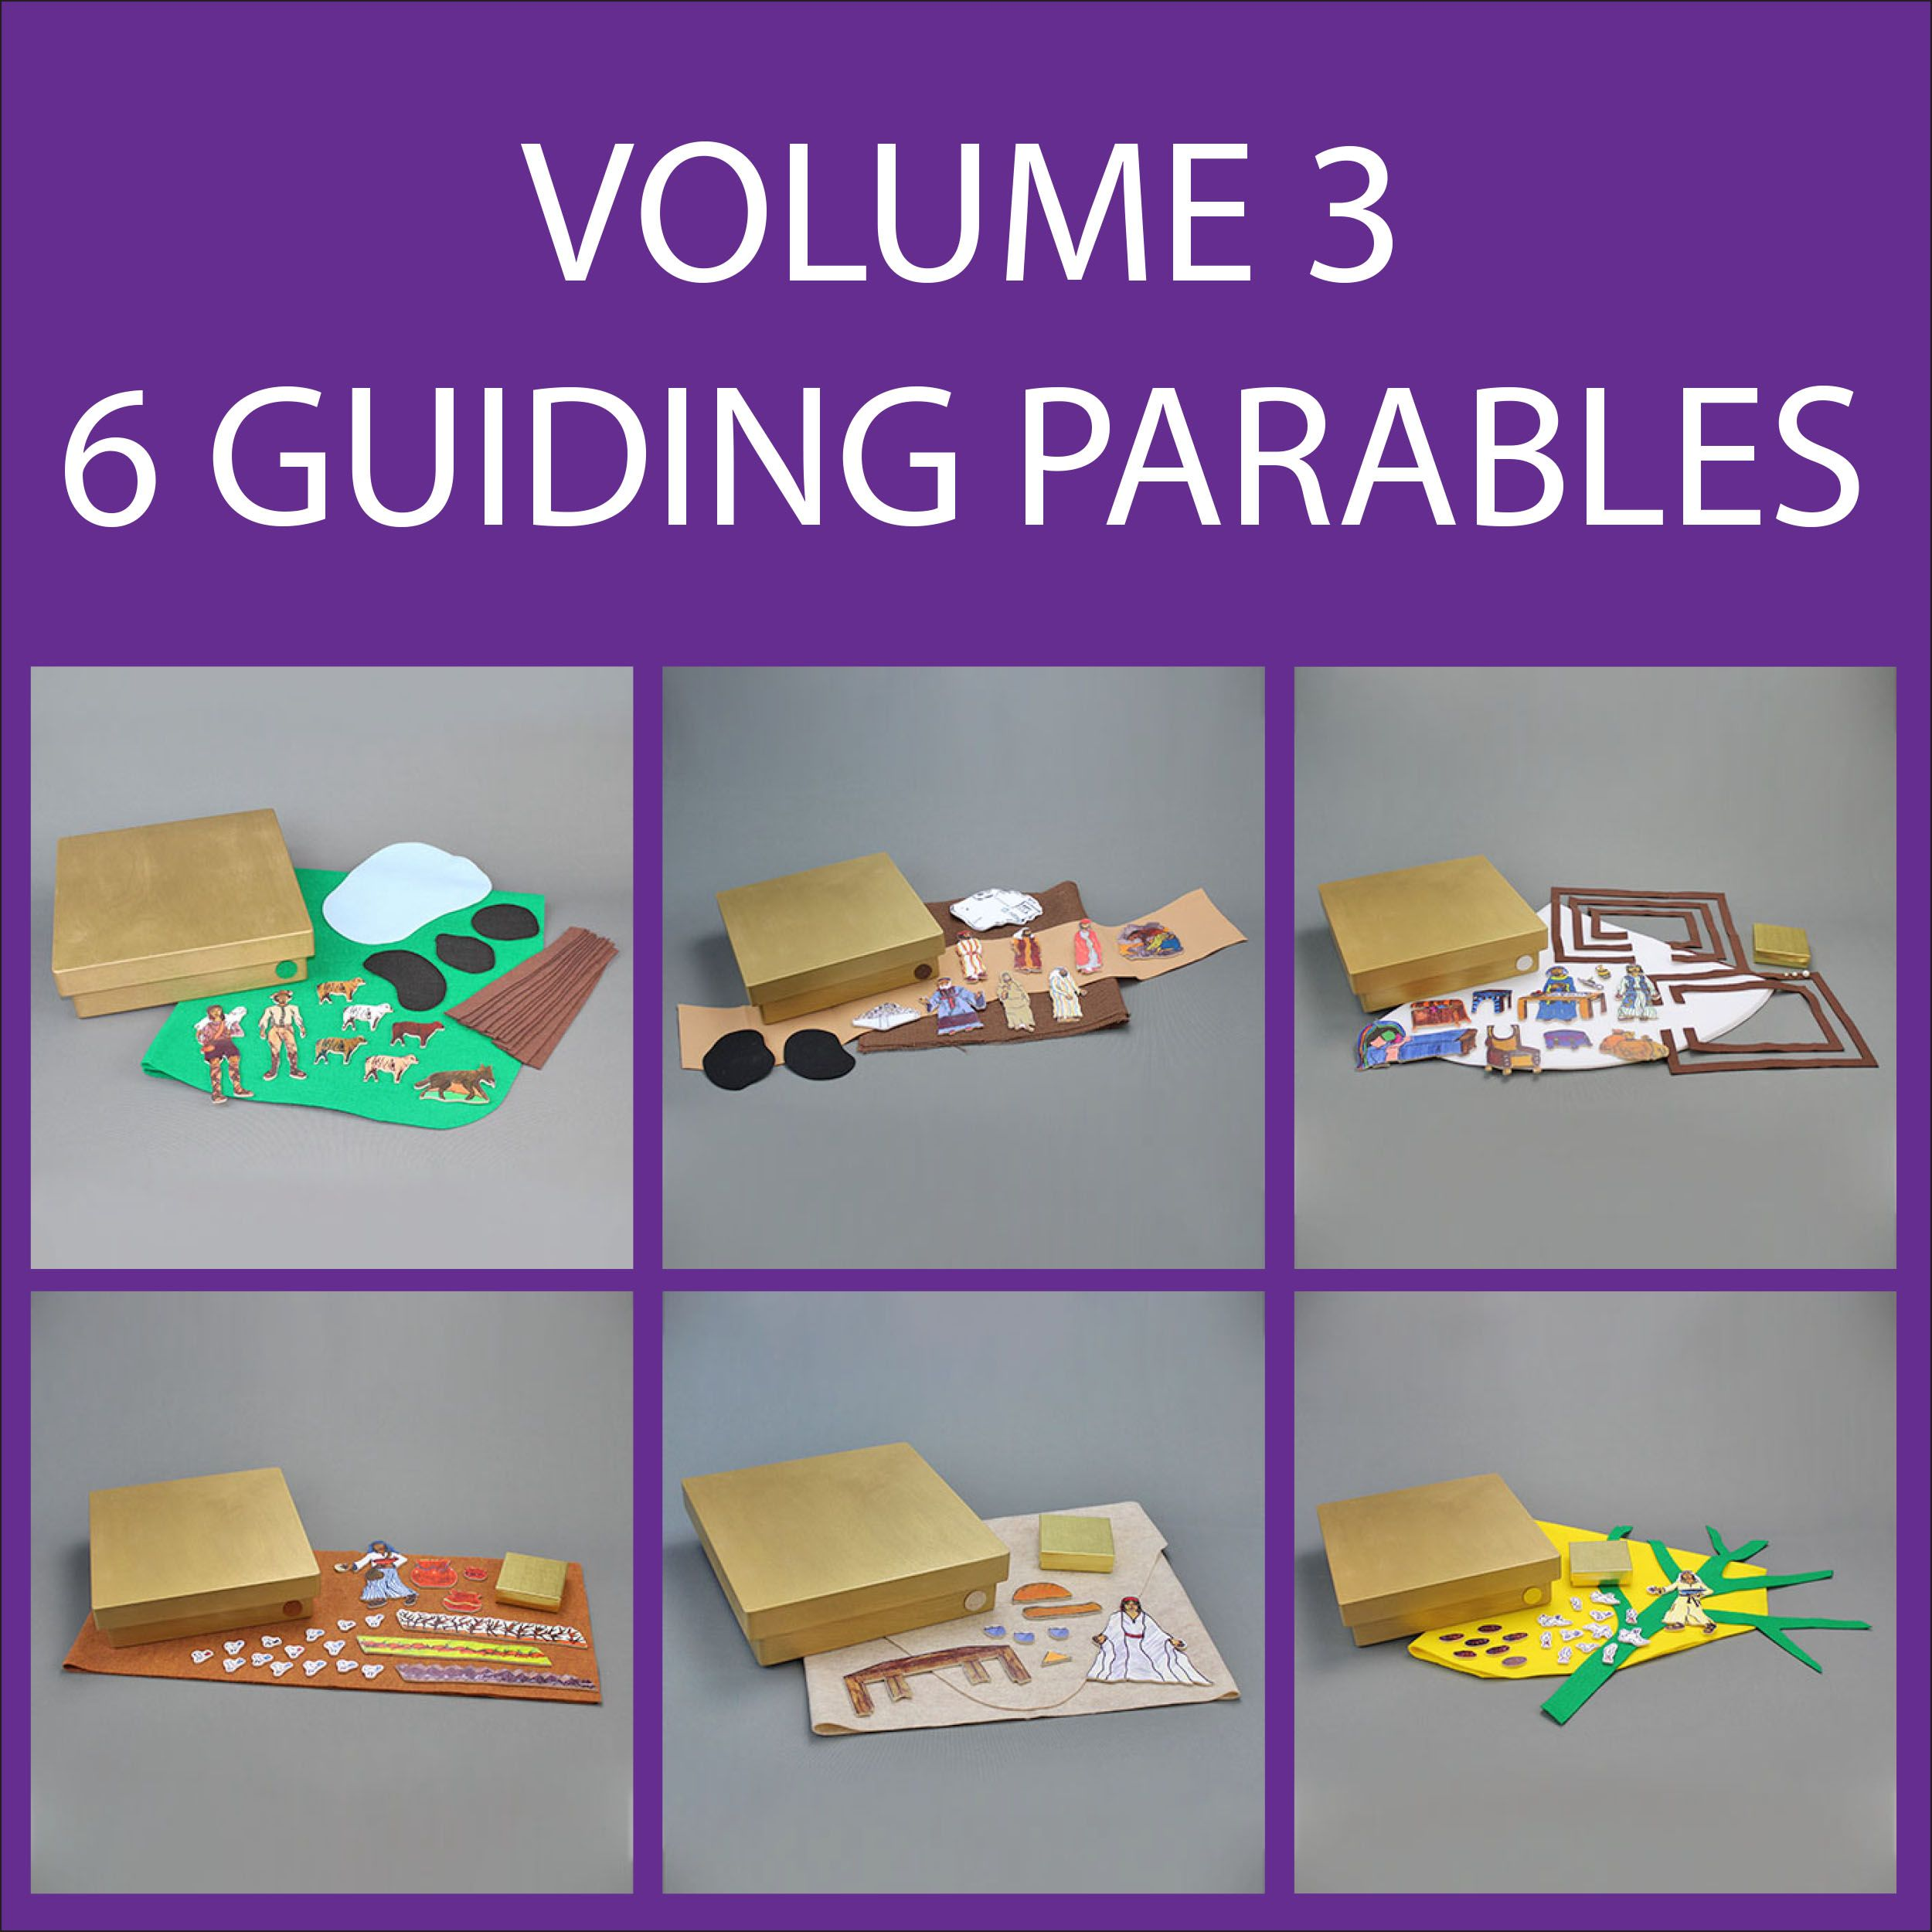 Gp325 Disc 6 Guiding Parable S